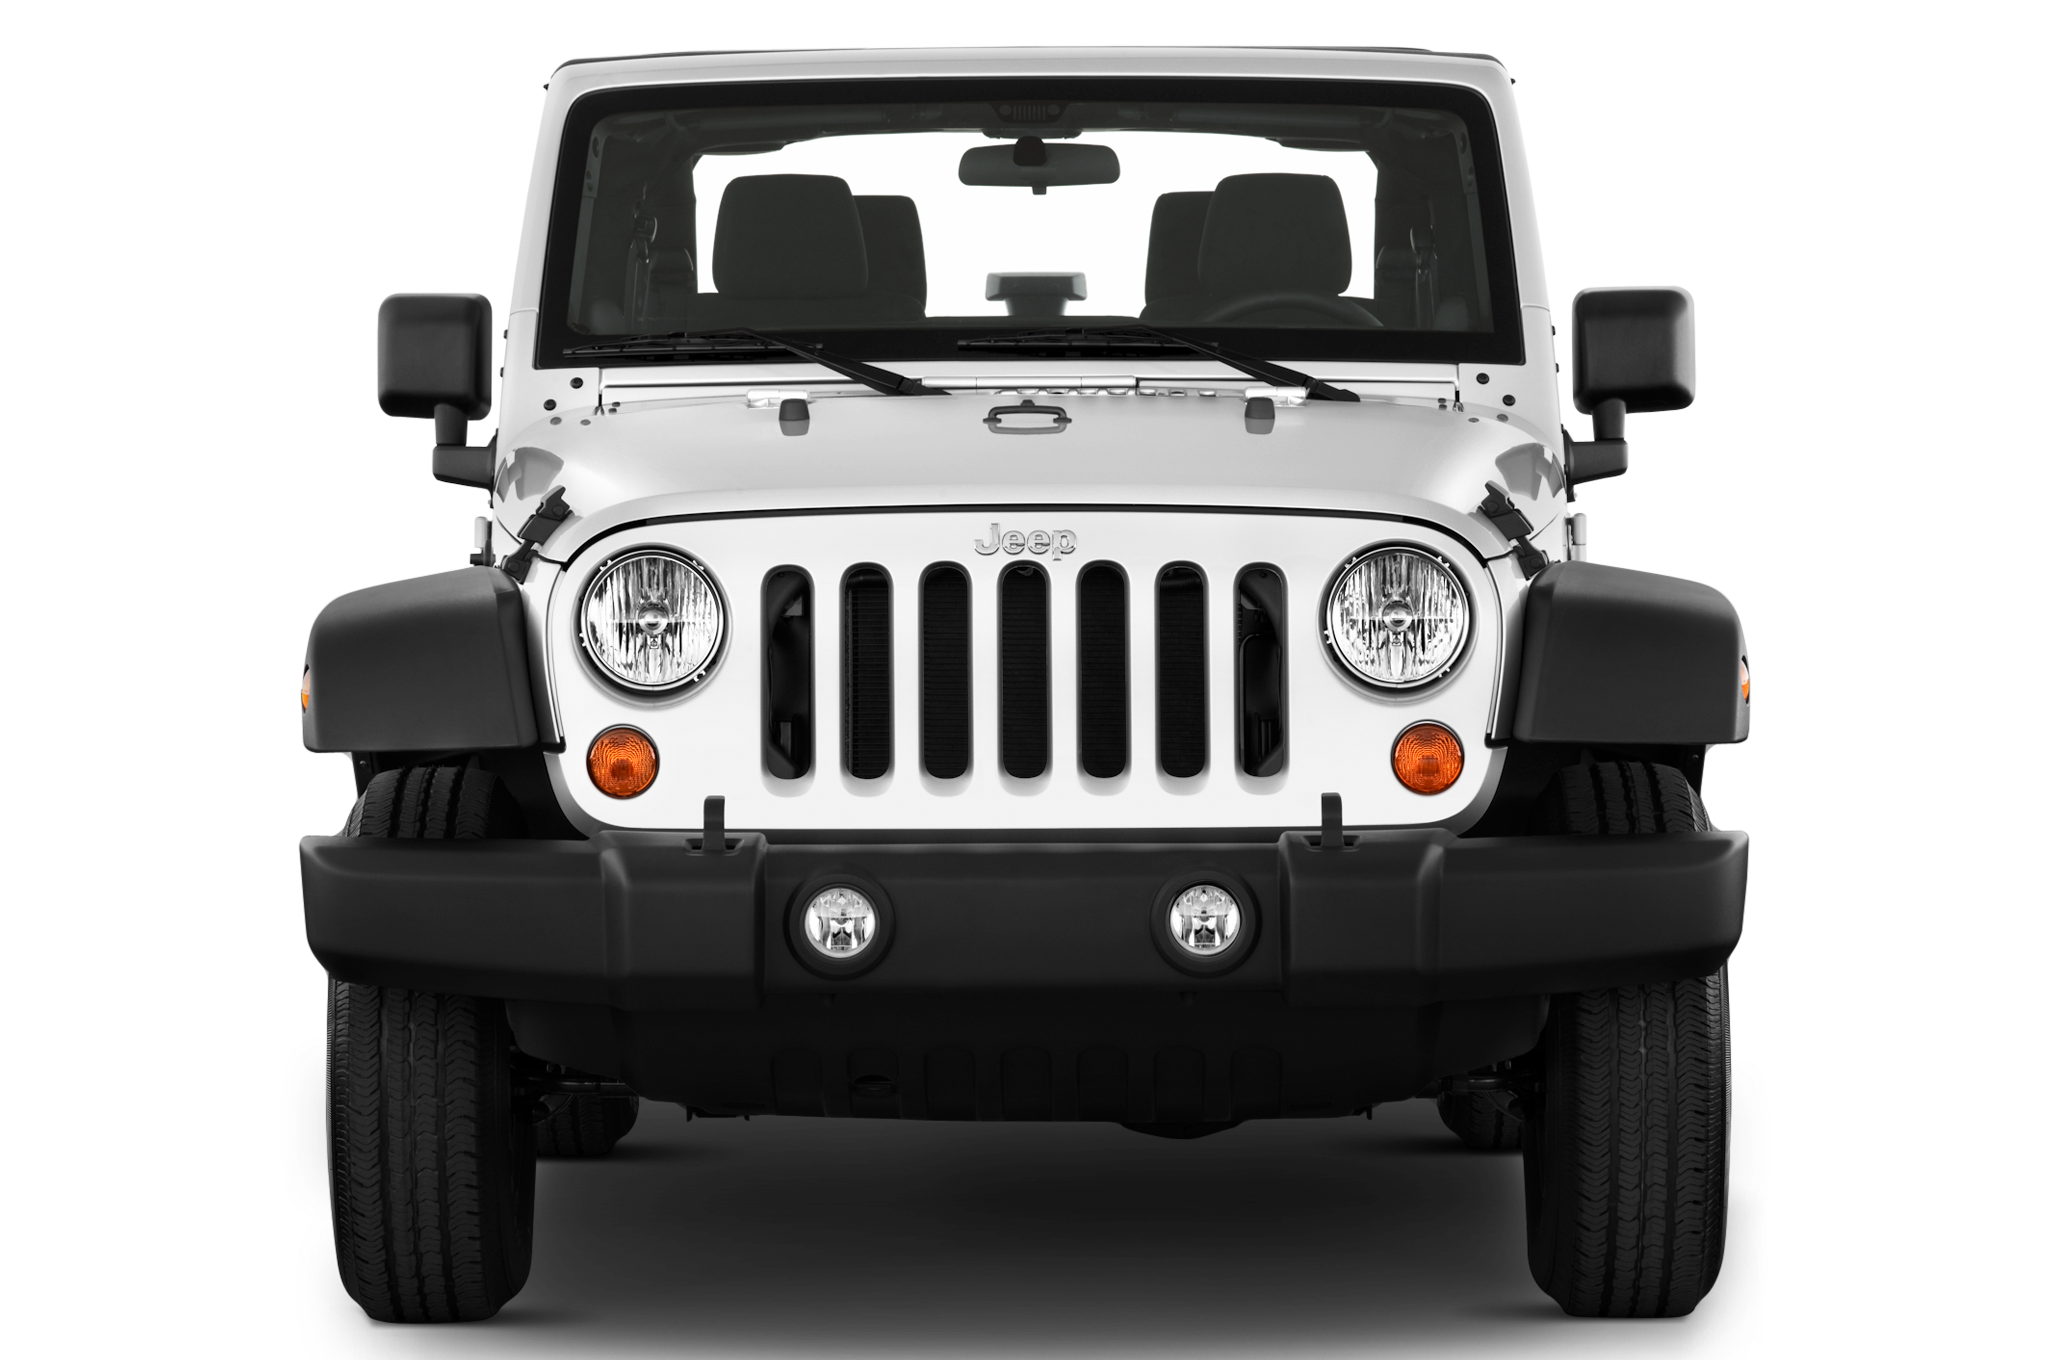 Jeep front png. Image purepng free transparent